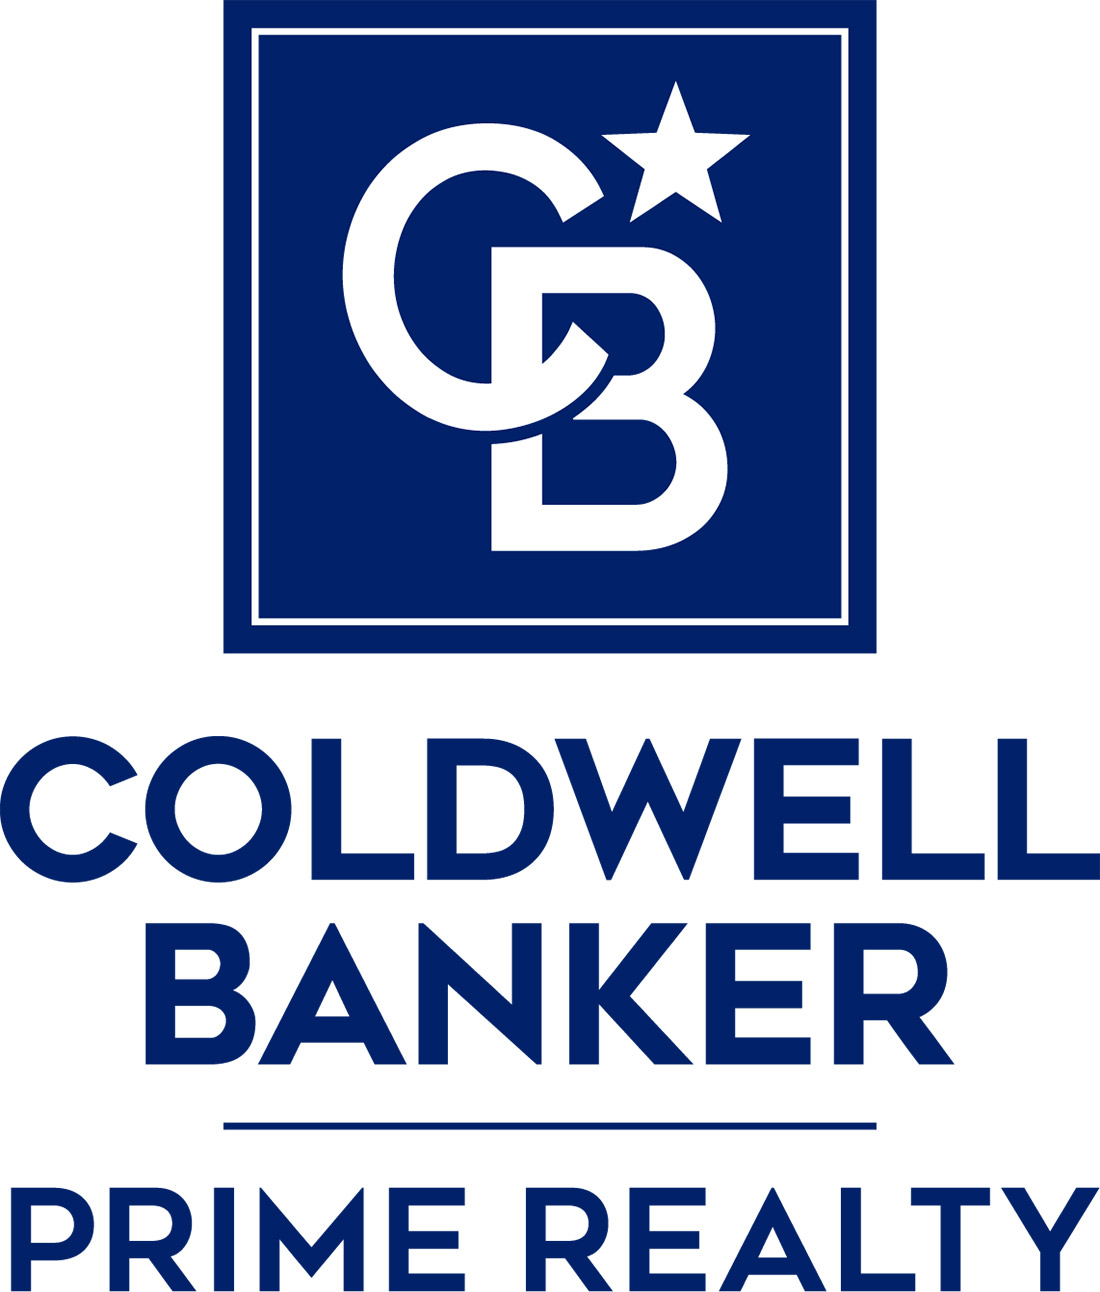 Amie Anderson - Coldwell Banker Prime Realty - Carbondale, IL Logo